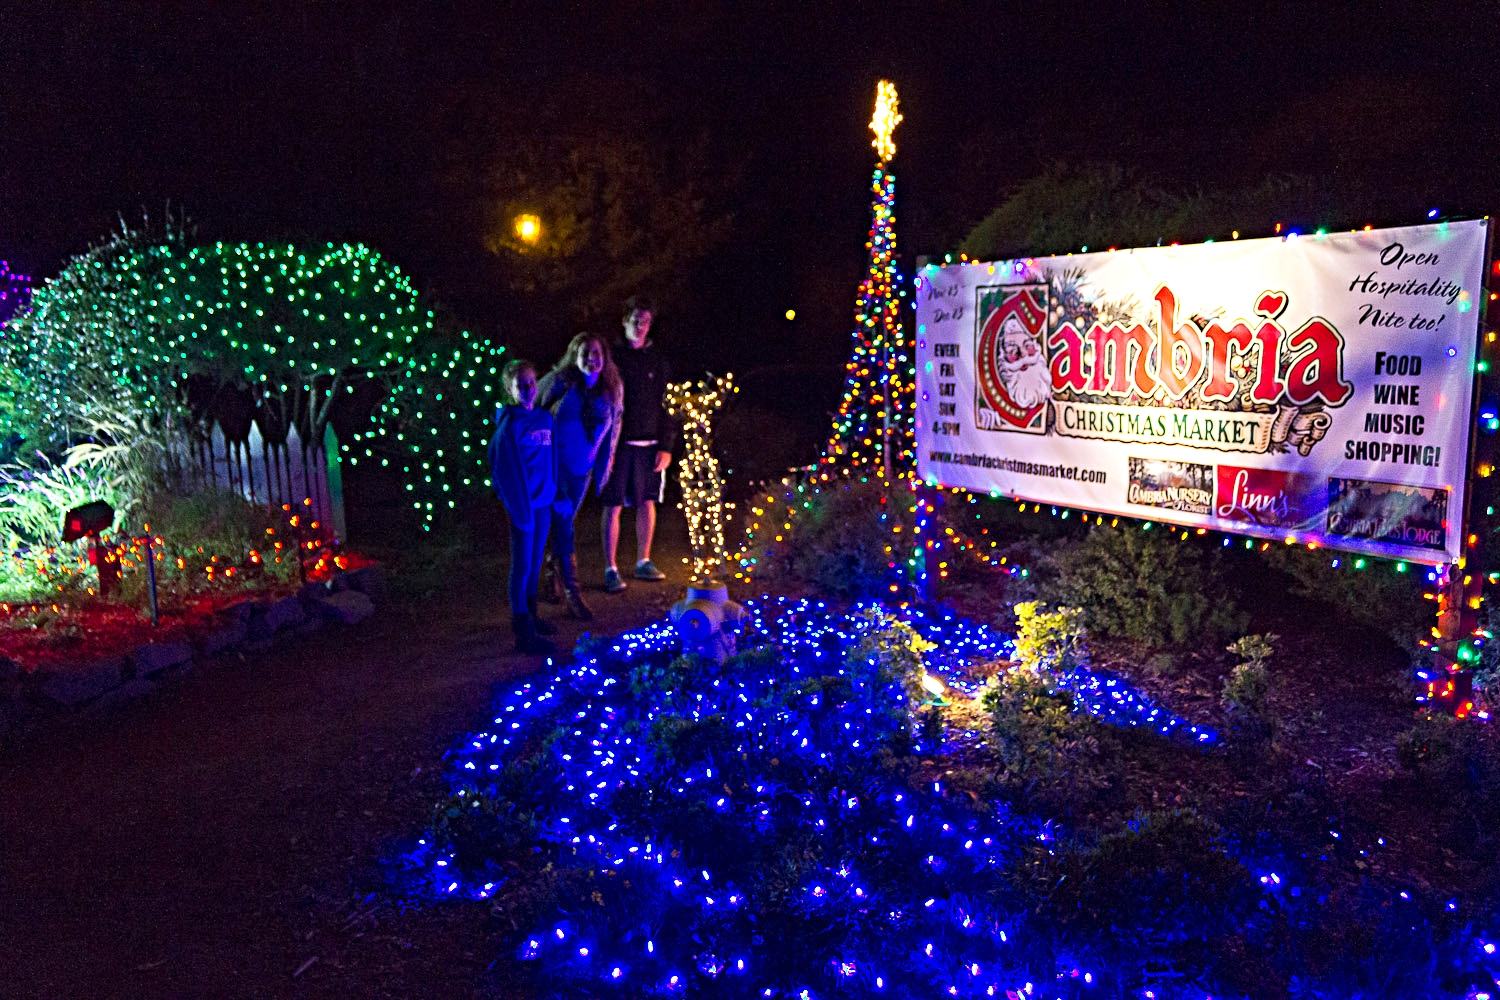 Visit the Cambria Christmas Market every December at the Cambria Pines Lodge - 2905 Burton Dr, Cambria, CA 93428.